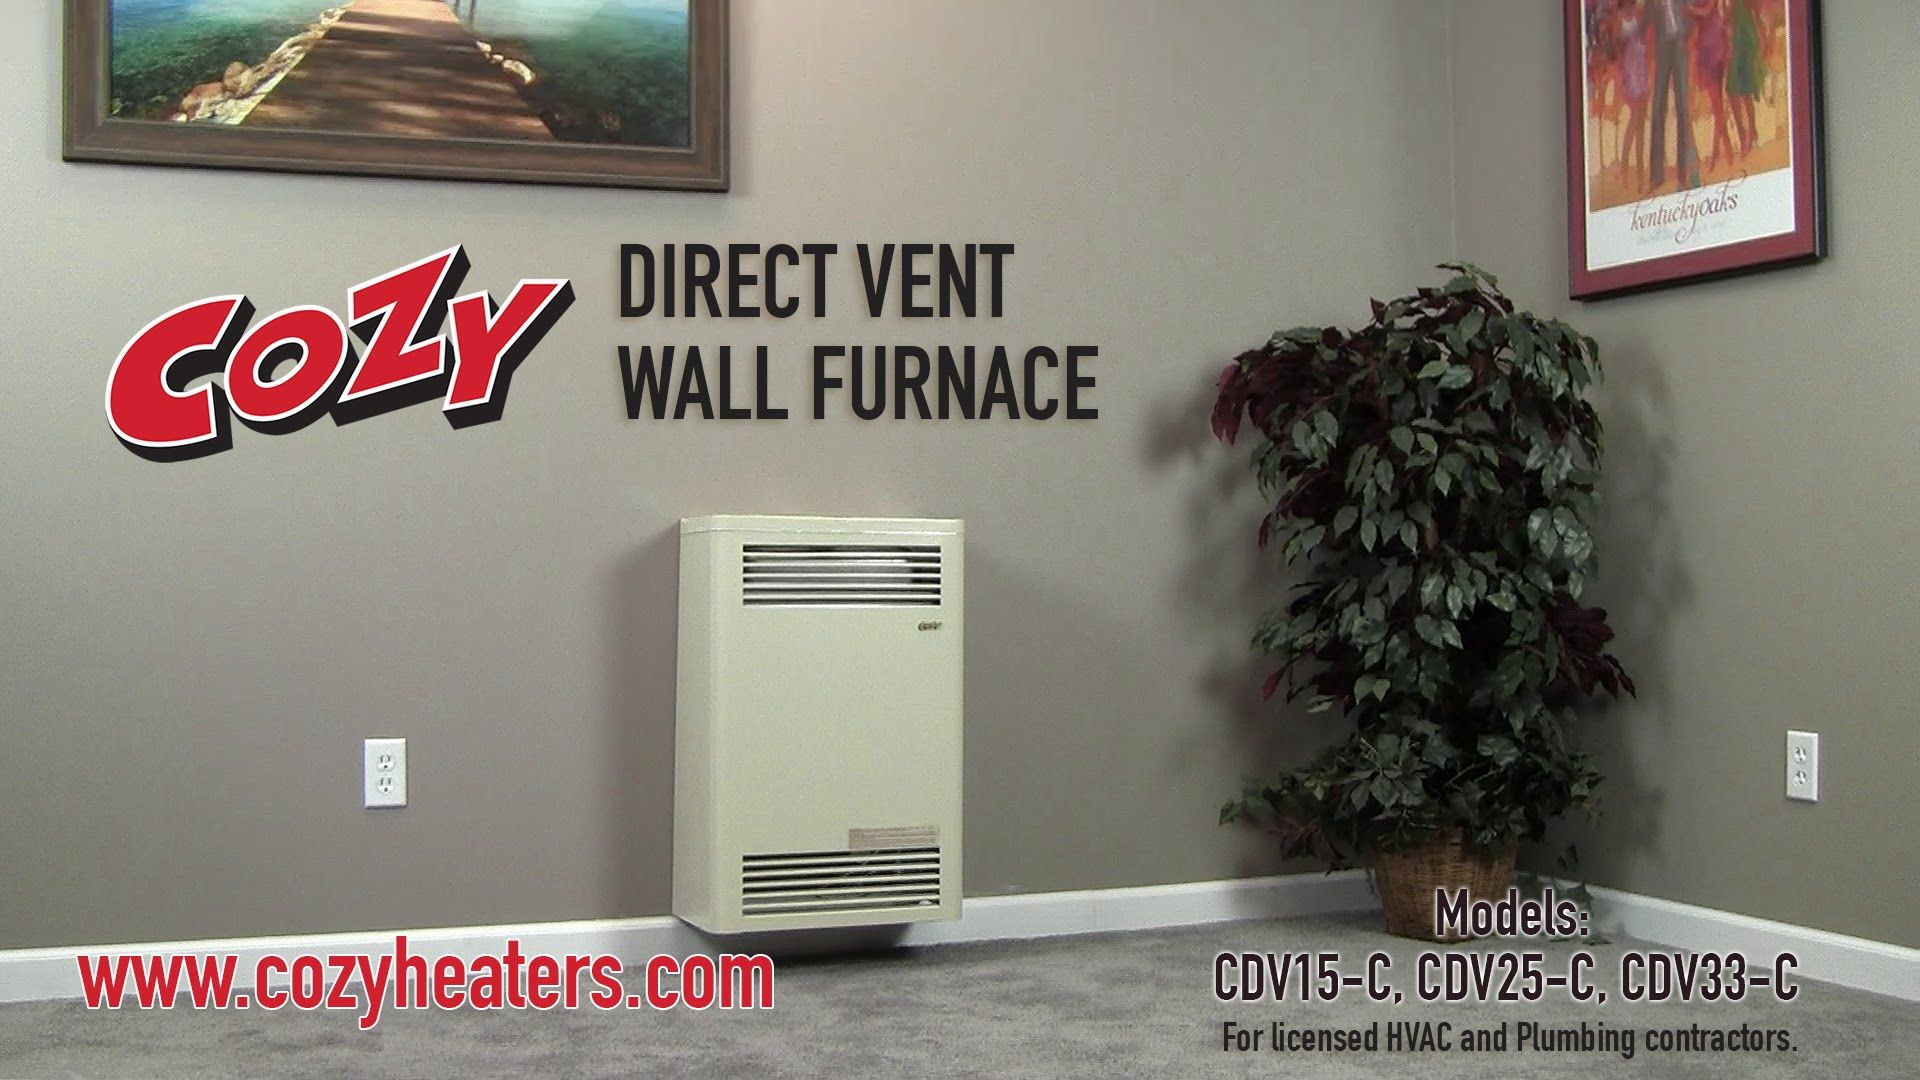 Direct Vent Wall Furnace Cdv Install This Video Is For Licensed Hvac And Plumbing Contractors Only The Cozy D Wall Furnace Installation Furnace Installation